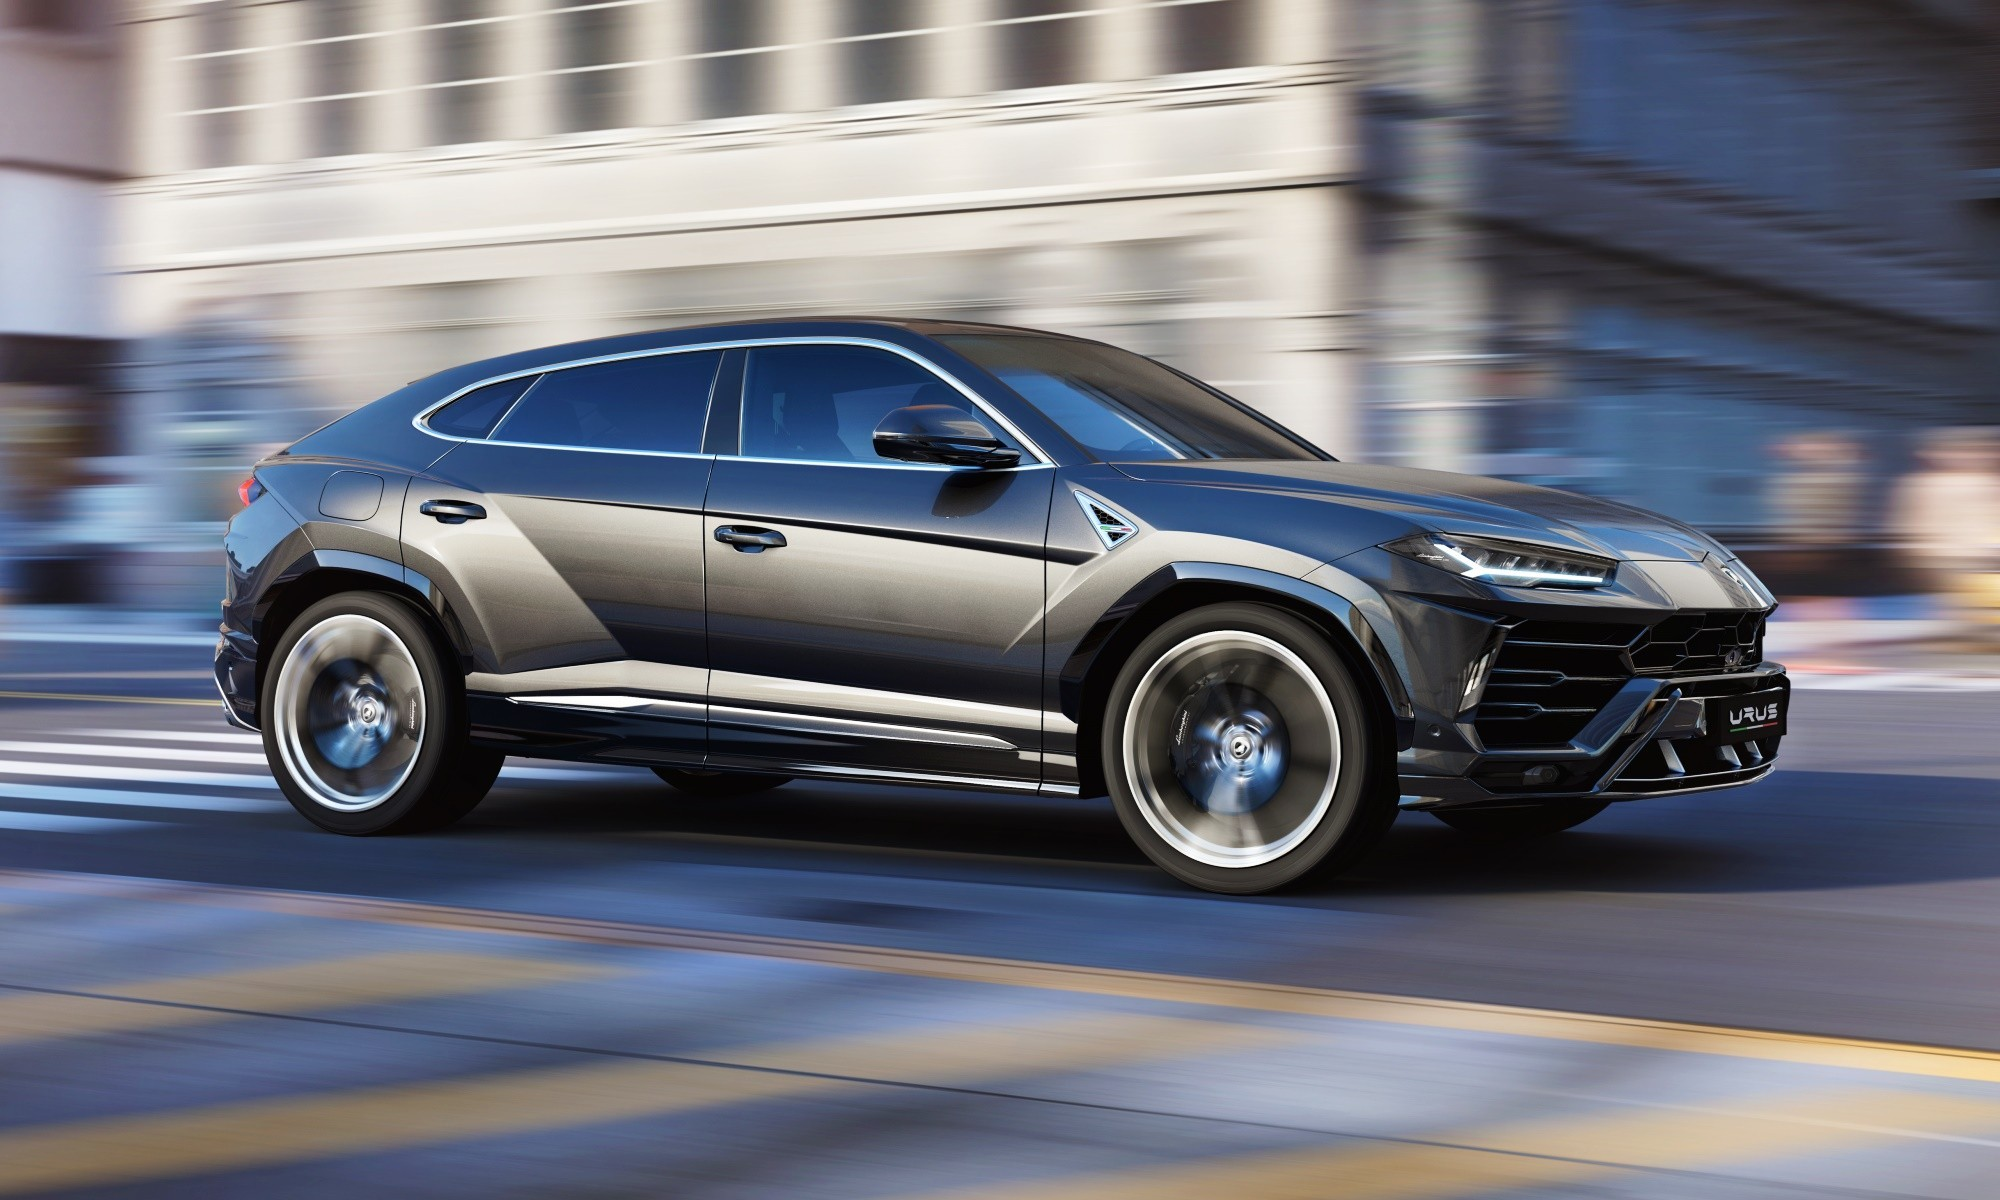 We Bring You A Driving Review Of The New Lamborghini Urus